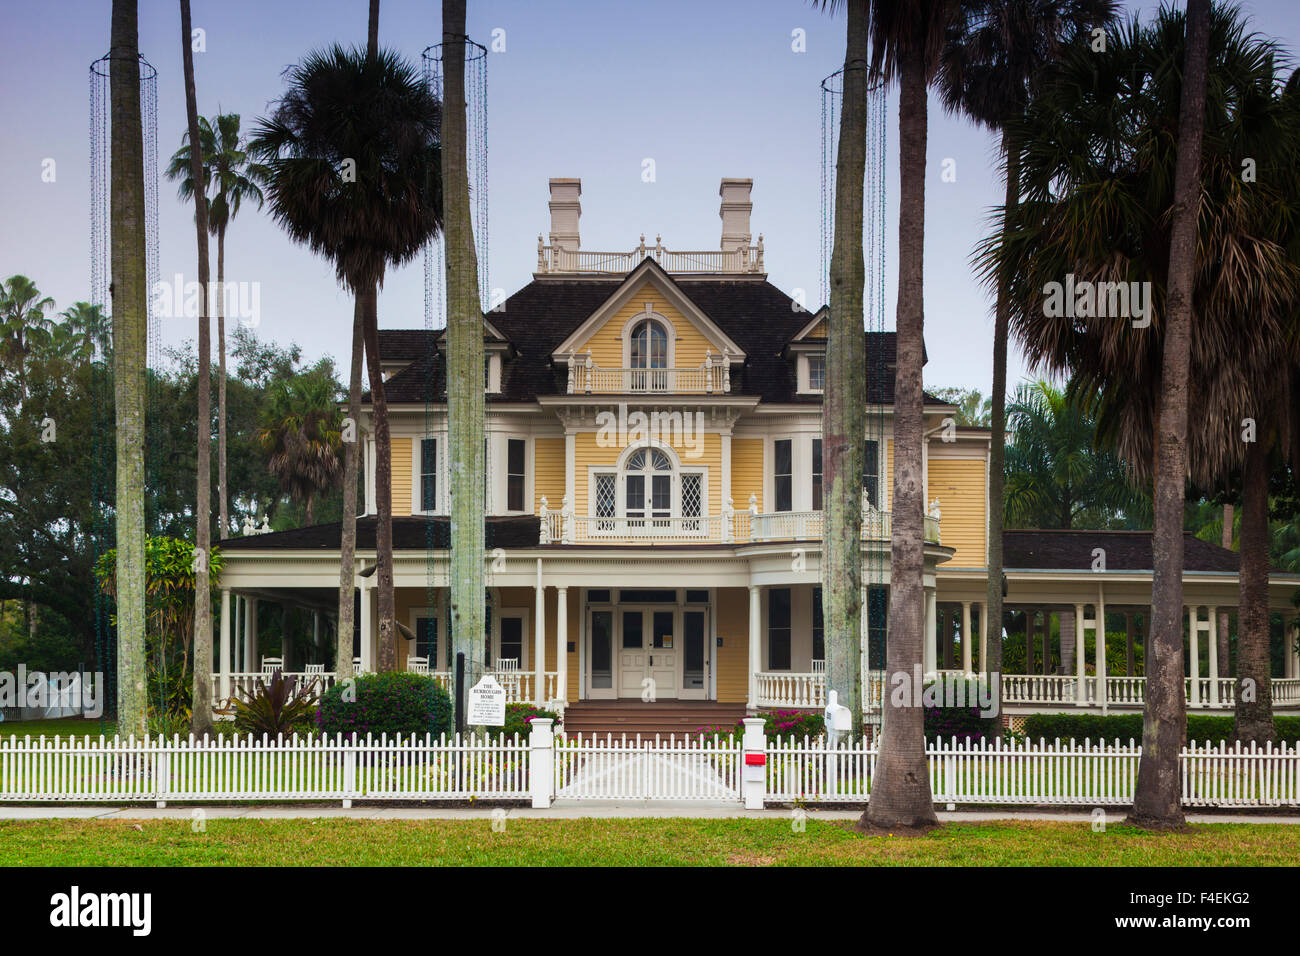 USA, Florida, Gulf Coast, Fort Myers, Burroughs Home And Gardens, Historic  House.